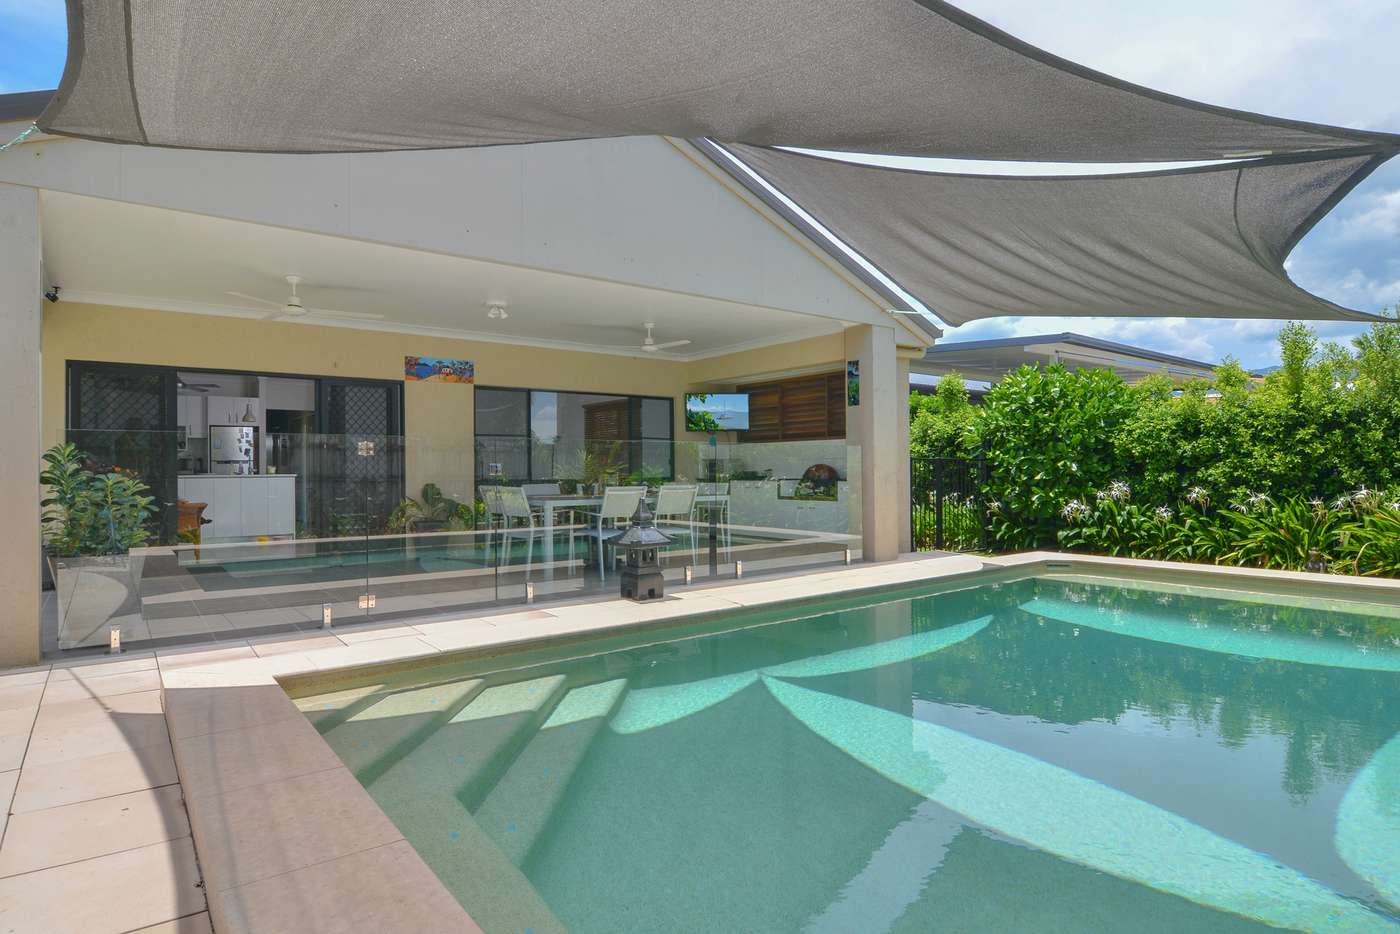 Main view of Homely house listing, 18 Bayil Drive, Cooya Beach QLD 4873